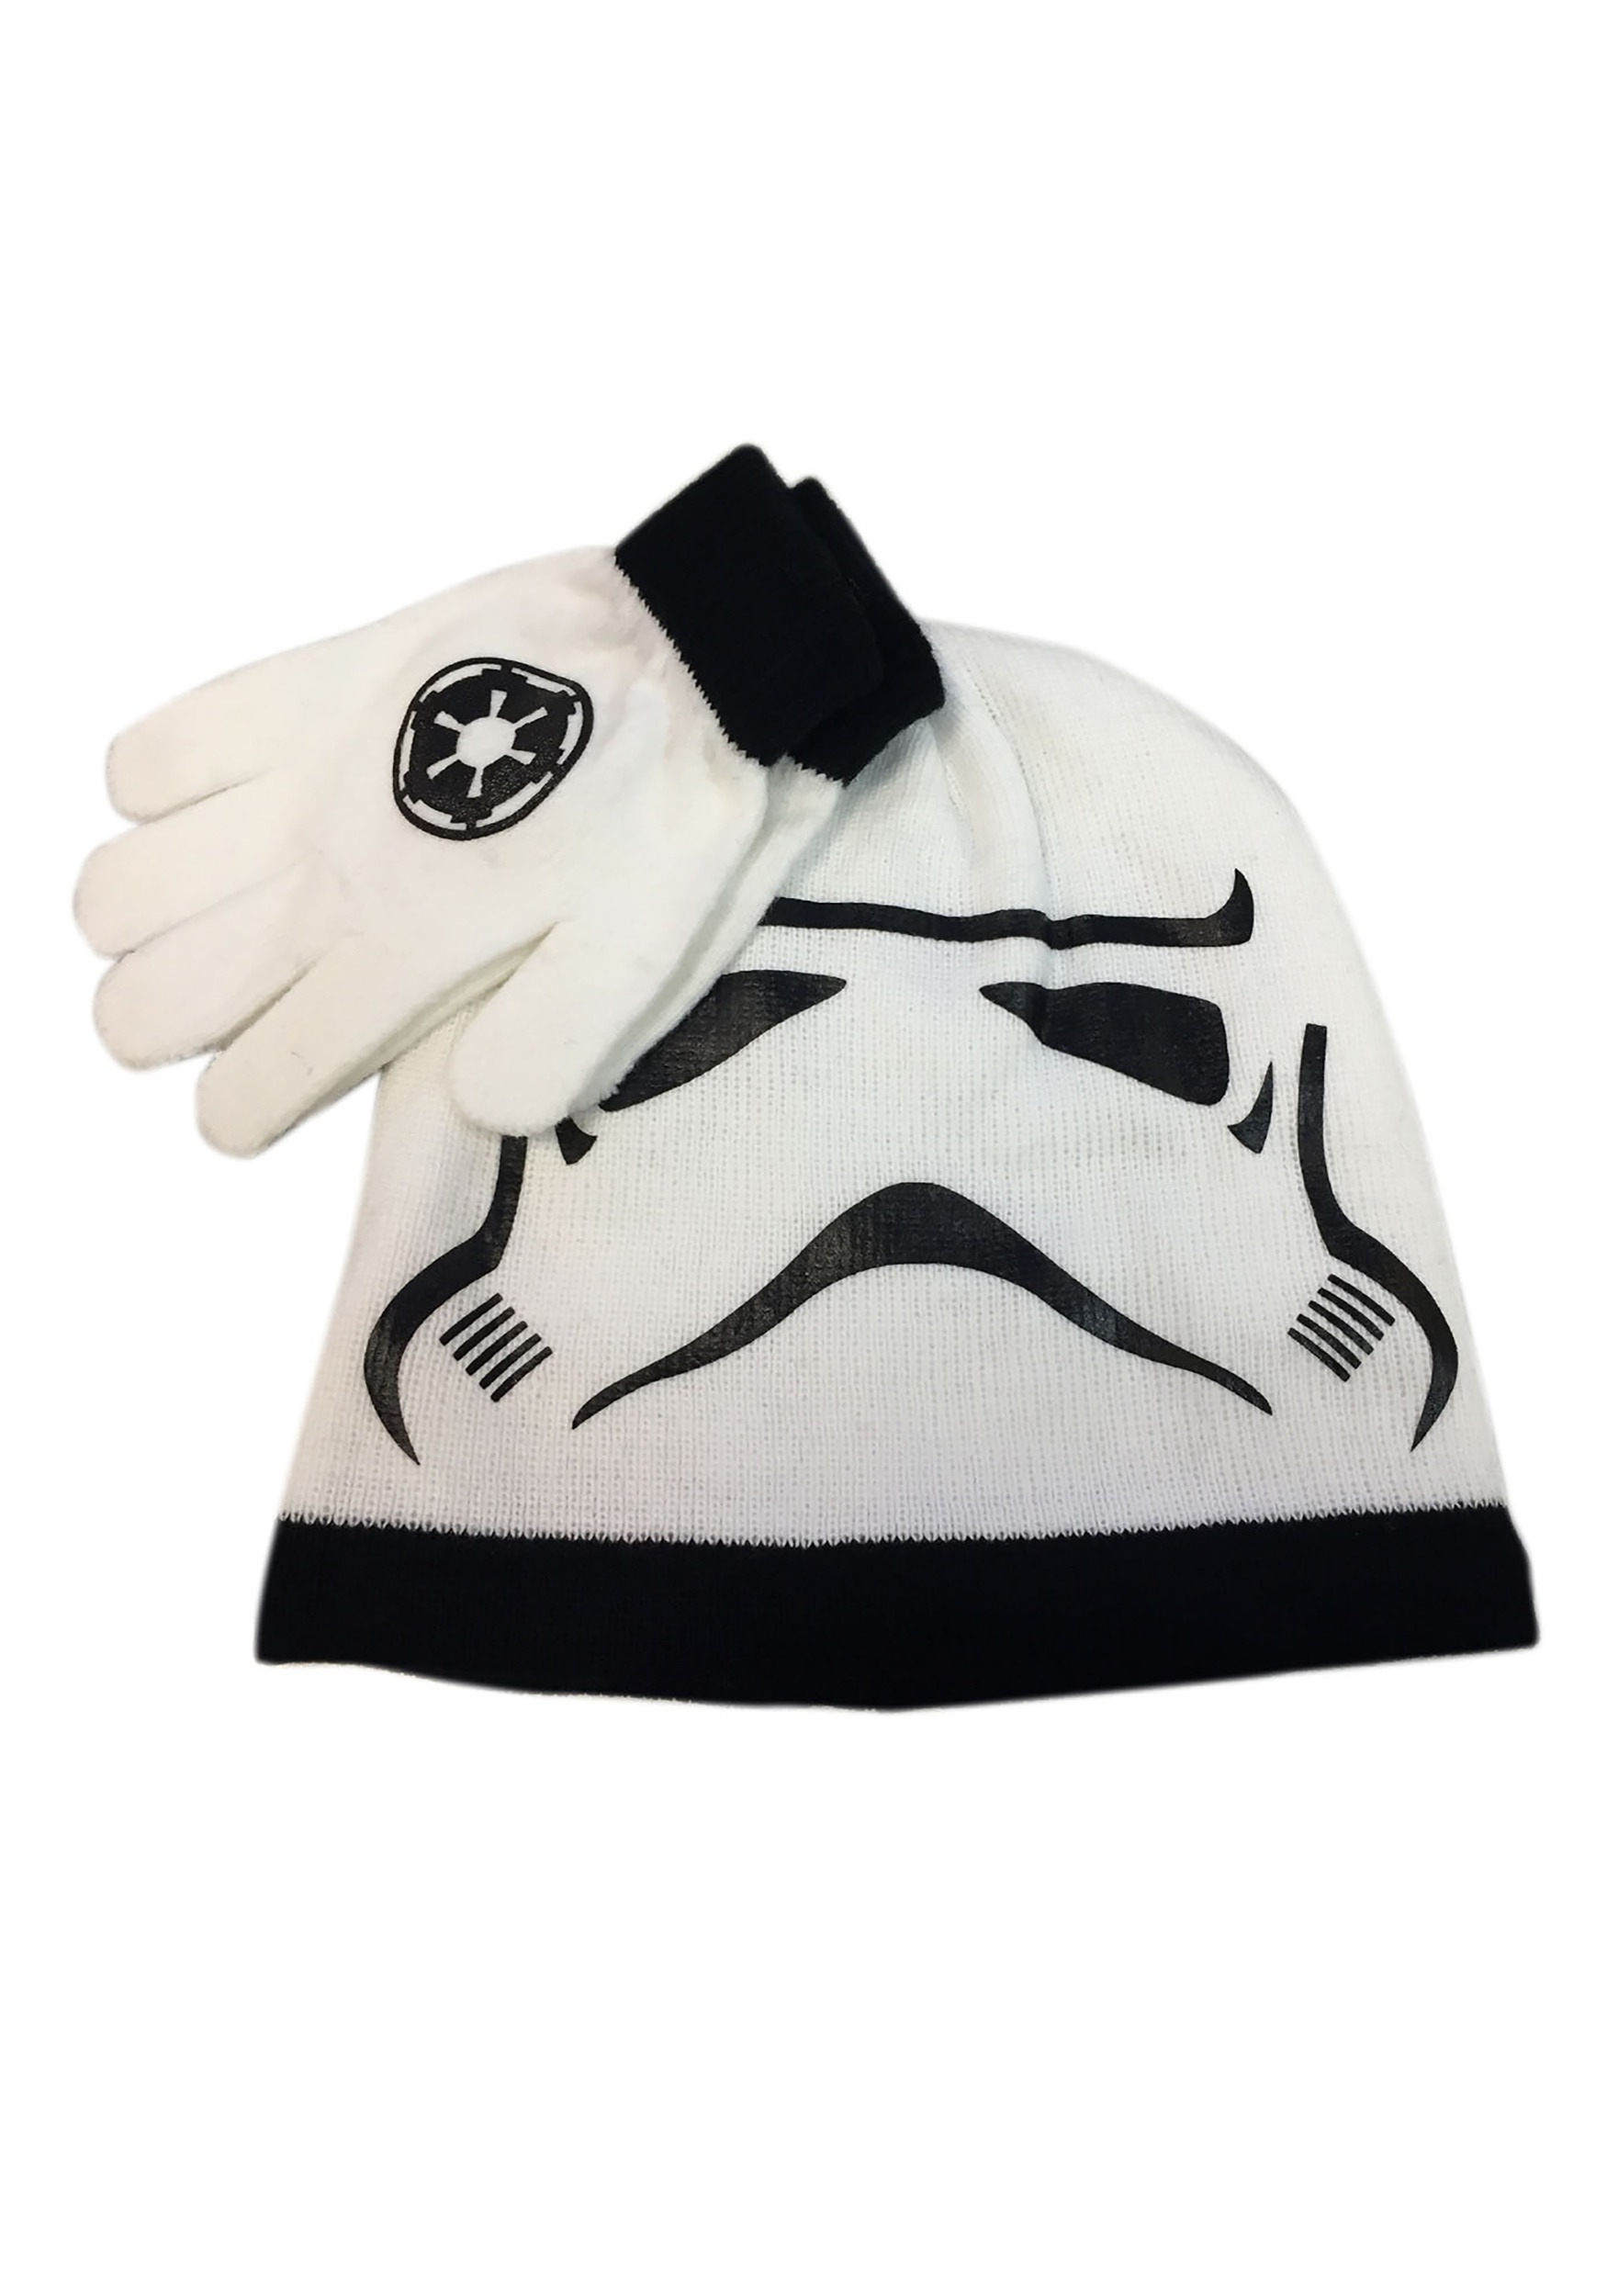 Kids Stormtrooper Big Face Knit Hat & Gloves Set